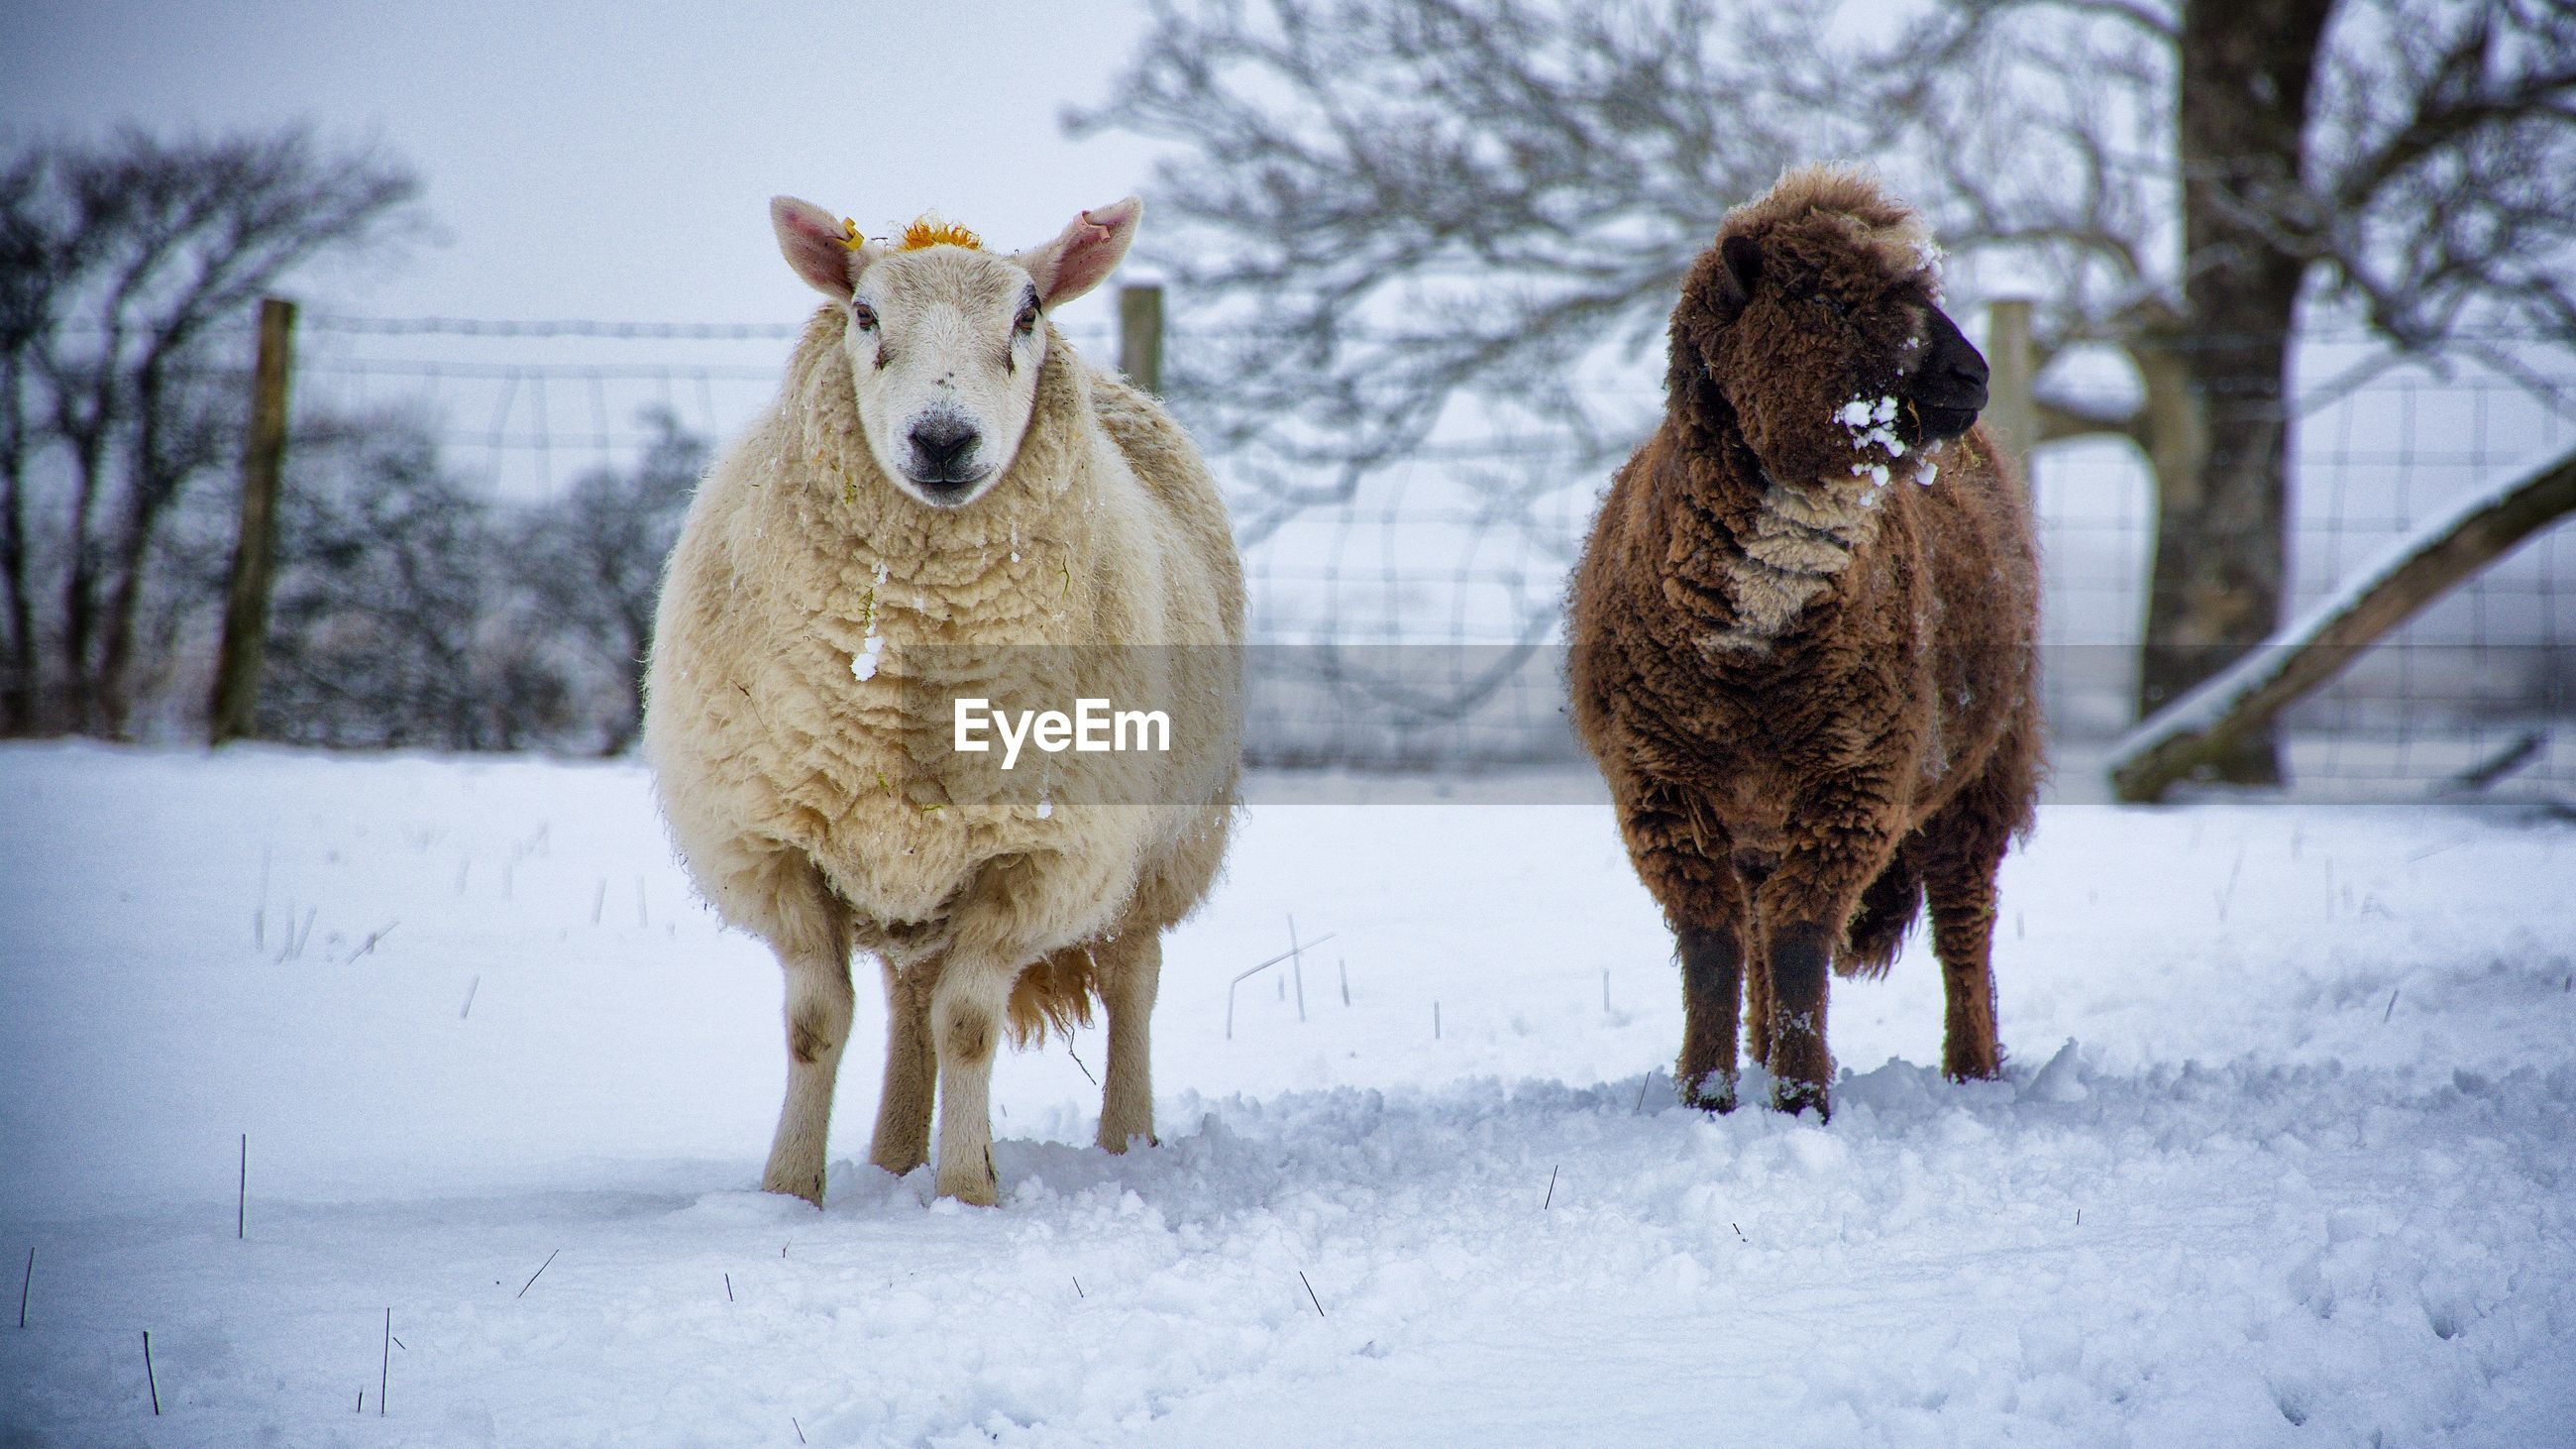 Sheep standing on snow covered field